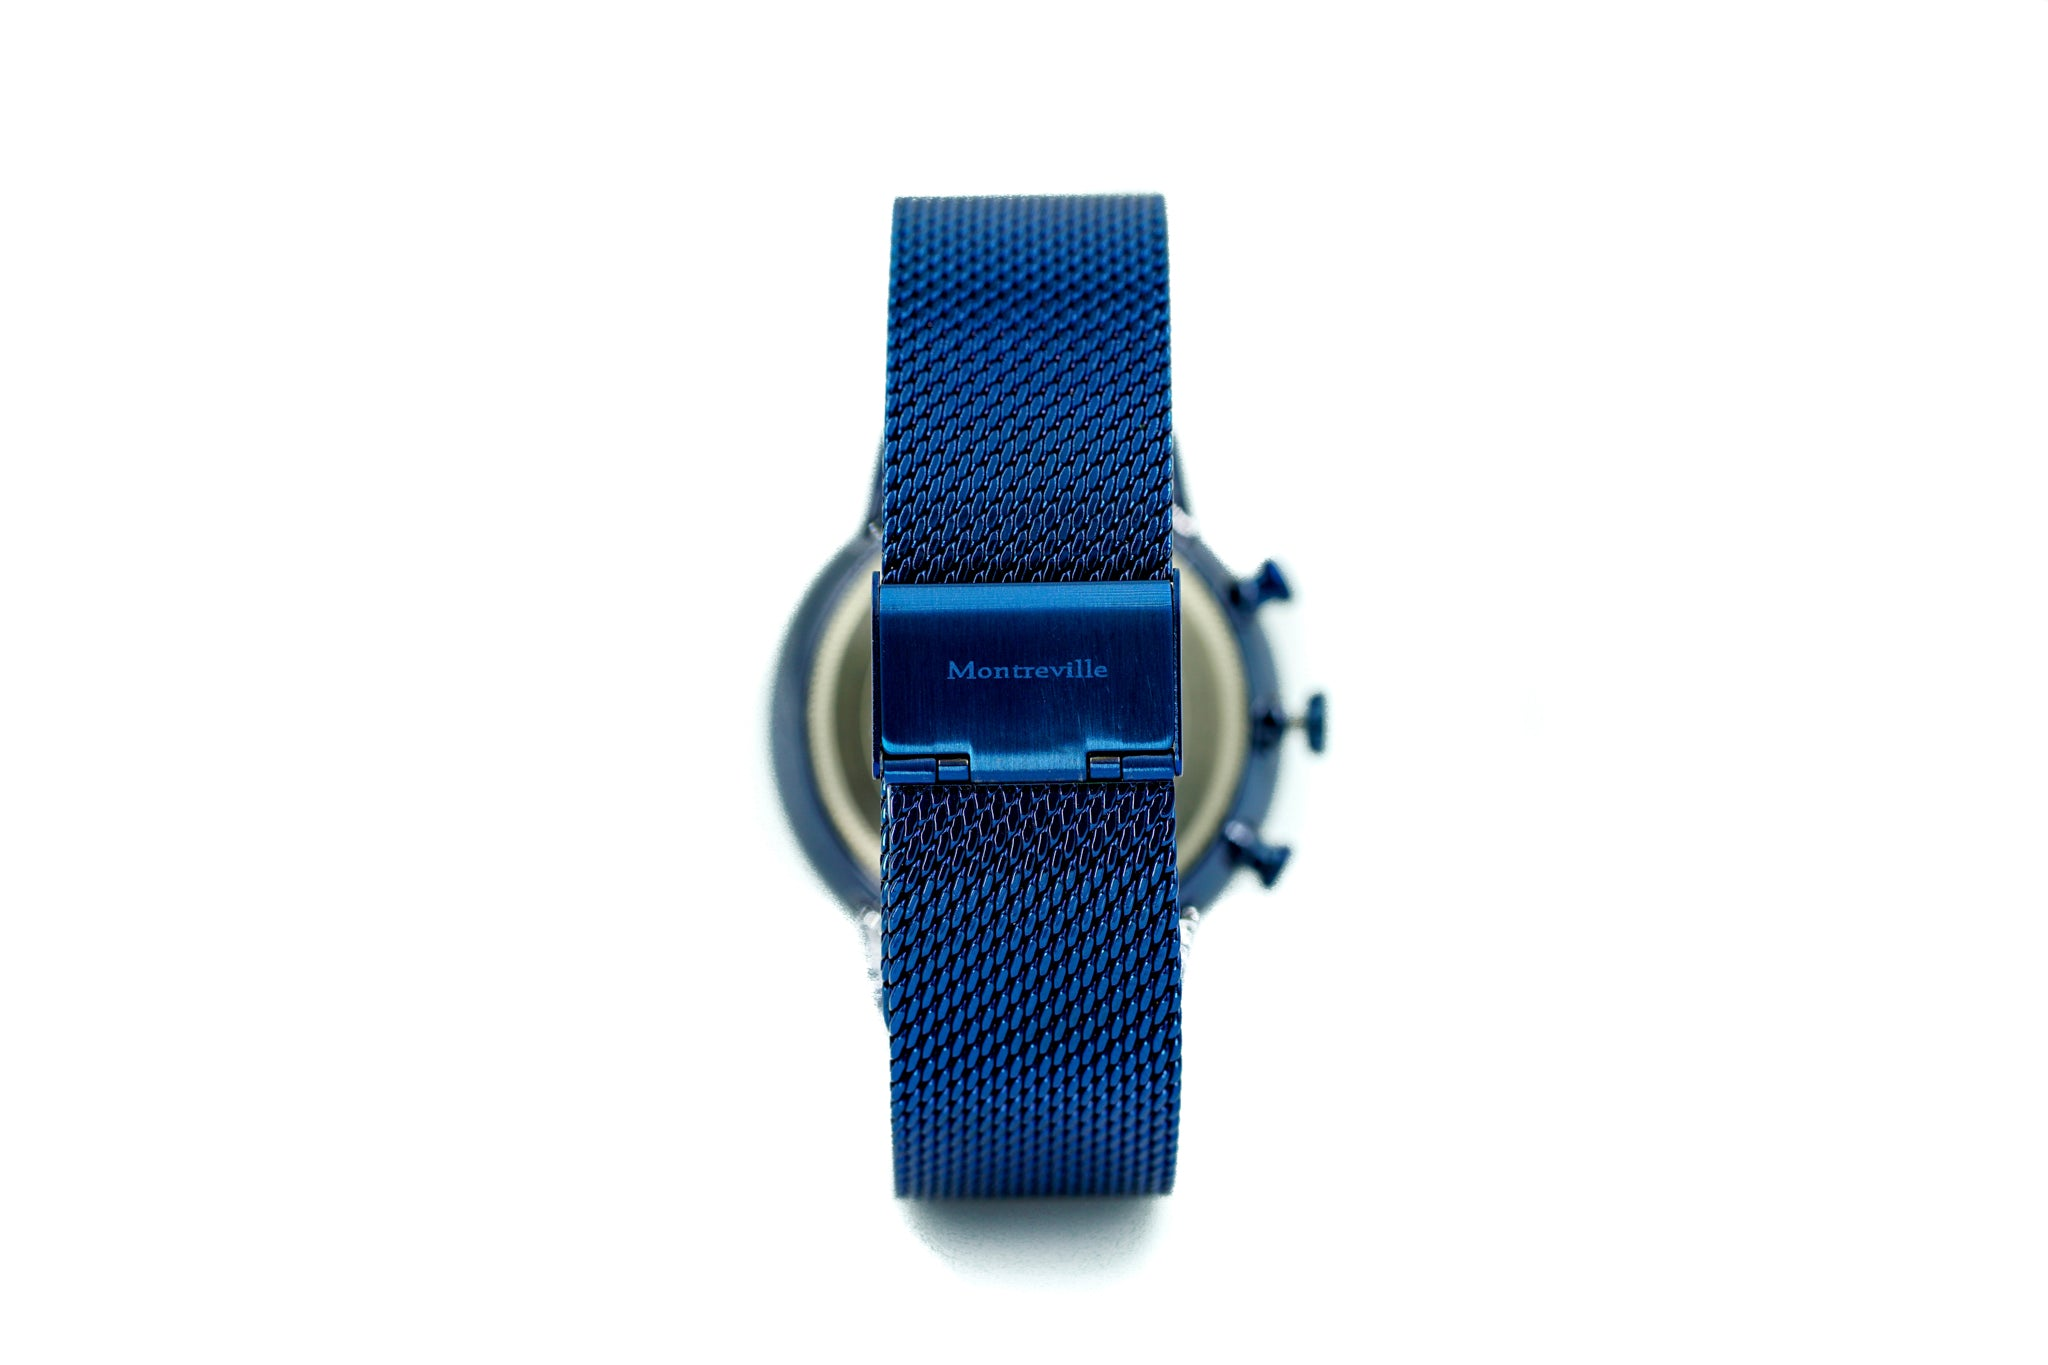 Blue watch called Jodhpur from the brand Montreville, seen from the back. This is an image of the watch with a white background. The timepiece has a unique design with a mesh strap in blue.